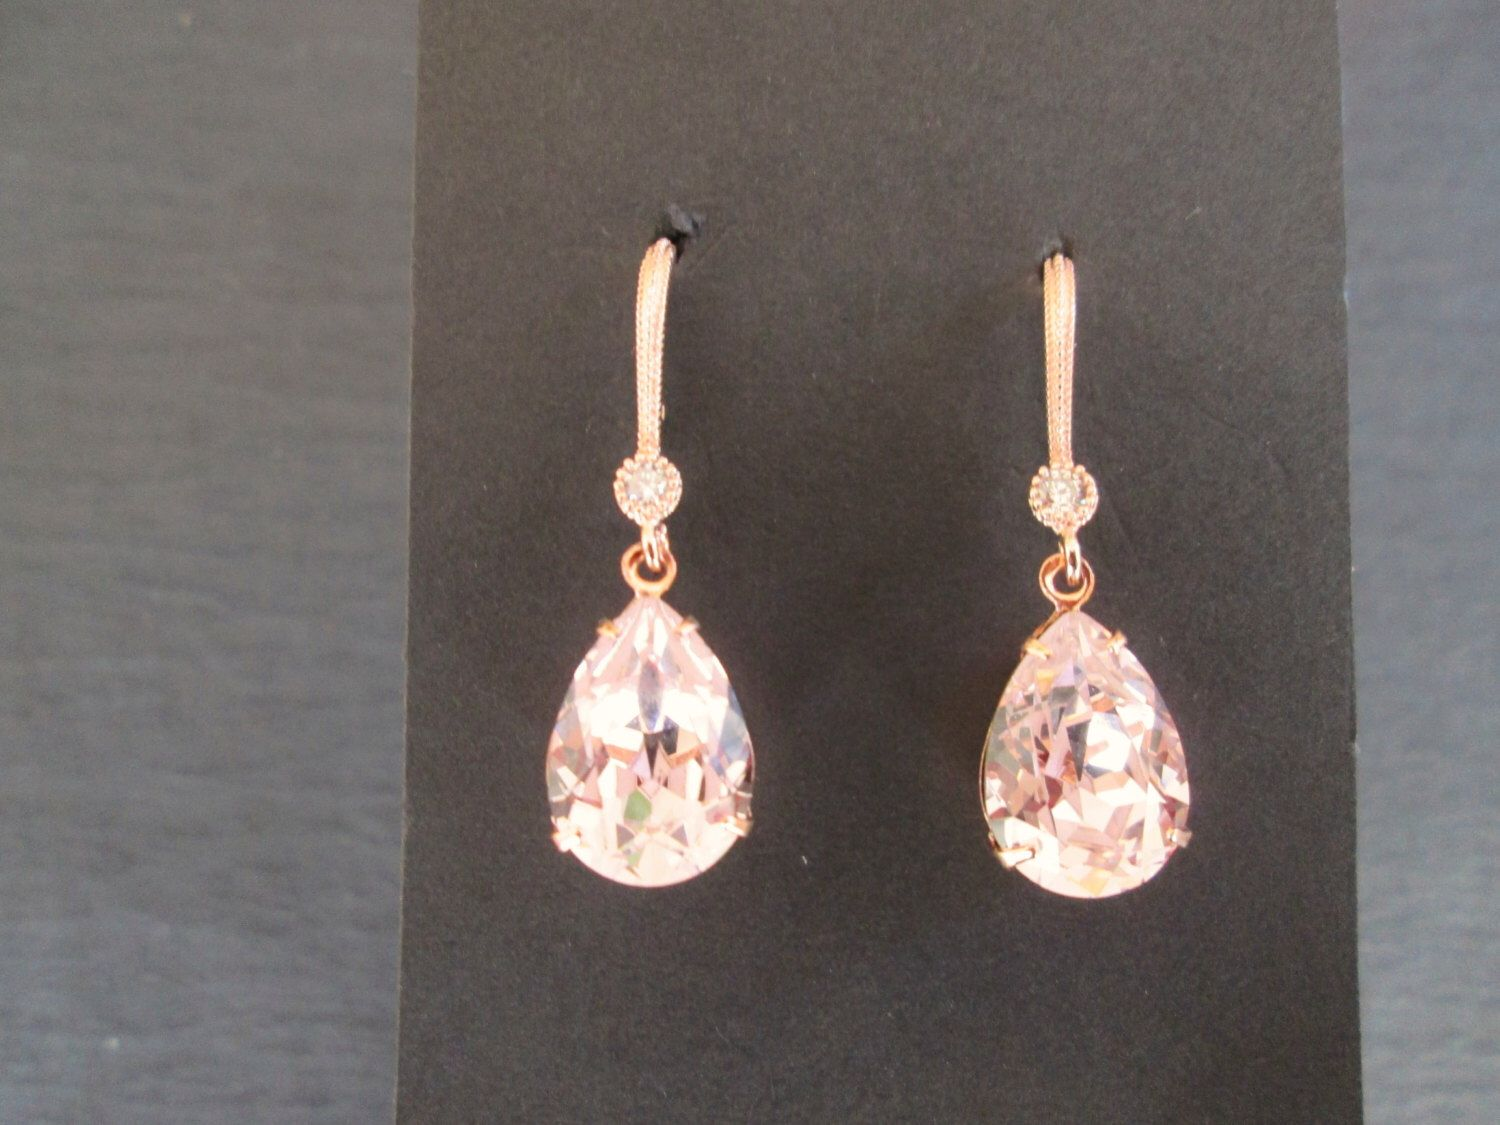 NEW Rose Gold Swarovski Earrings/ Rosaline Pink Bridesmaid Jewelry/ Wedding Jewelry/ Pink Crystal Earrings/Rose Gold Earrings/Blush Earrings by KVEdesigns on Etsy https://www.etsy.com/listing/232044295/new-rose-gold-swarovski-earrings